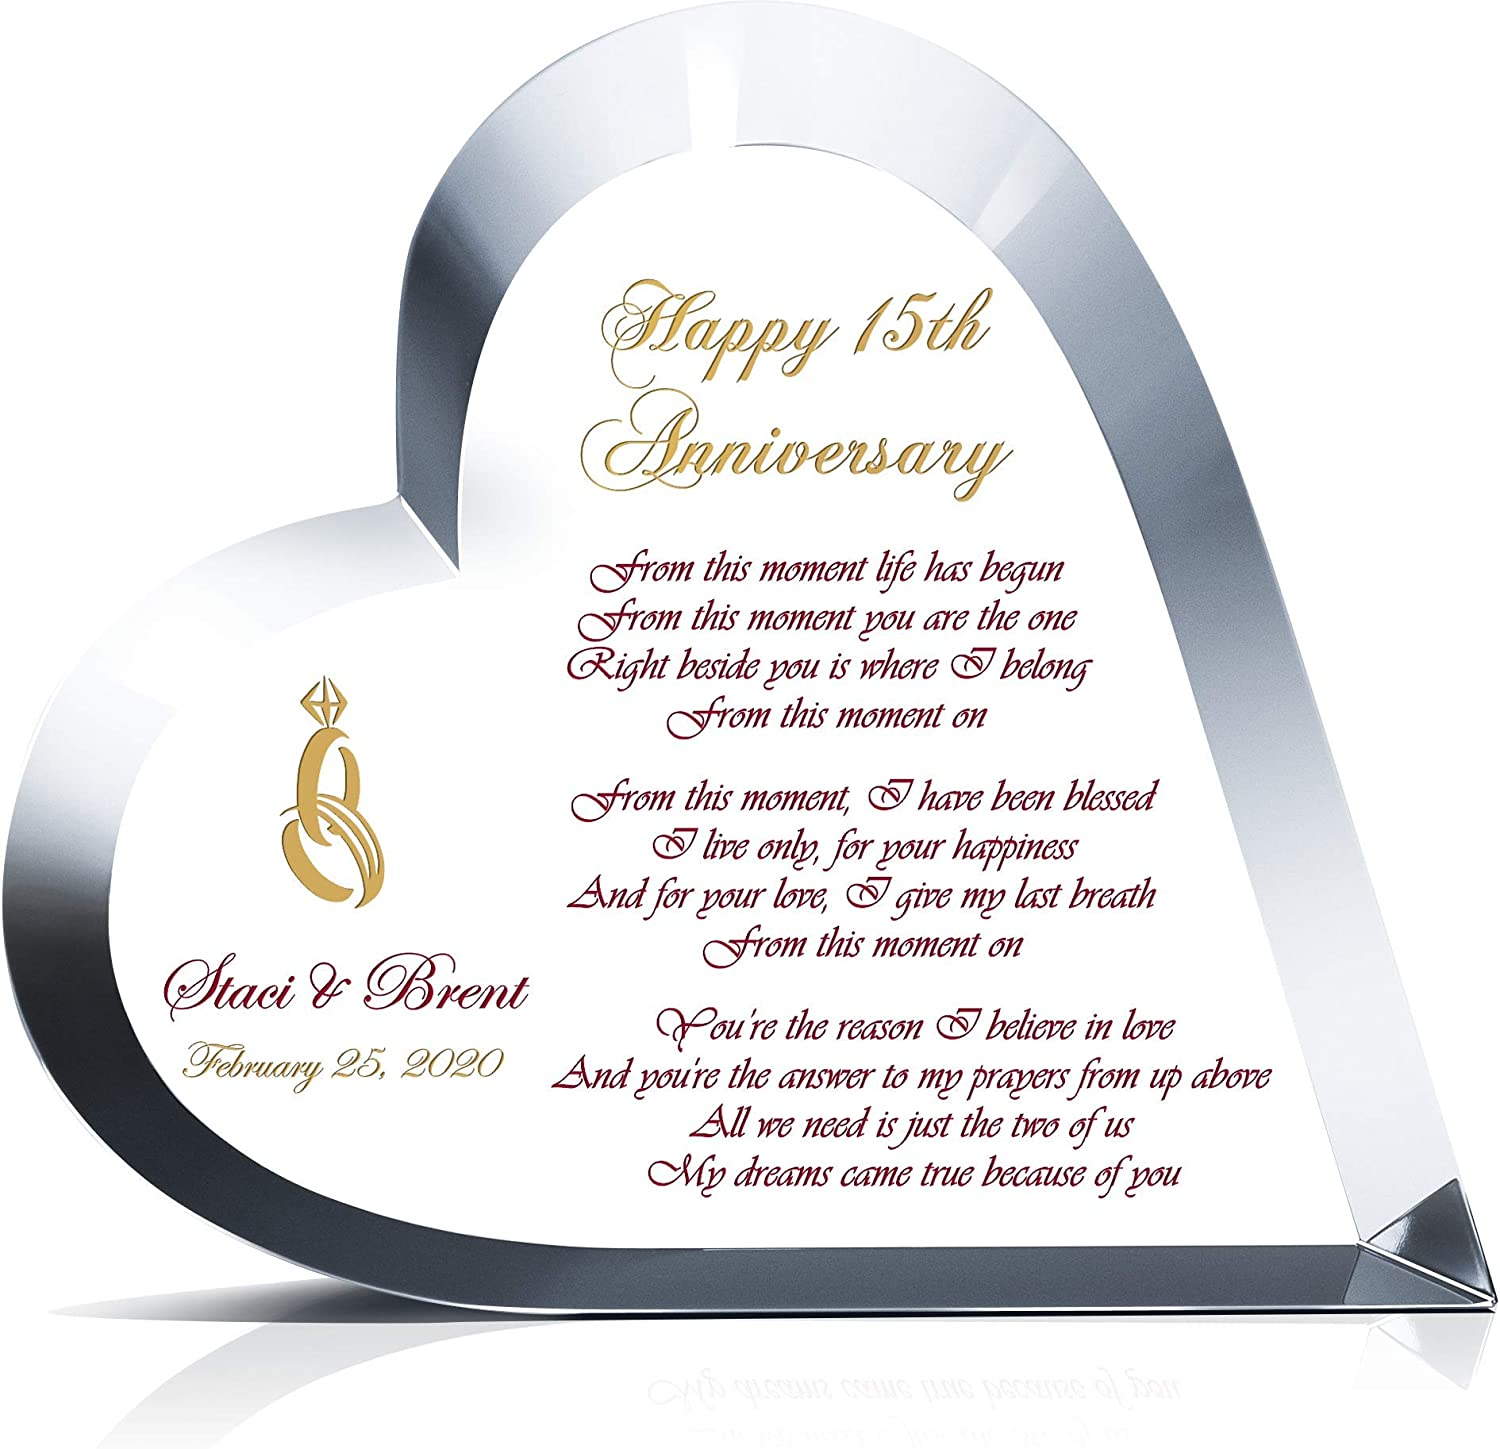 Amazon Com Personalized Heart Shape Crystal Gift For 15th Wedding Anniversary For Him Or For Her Customized With Love Poem Couple Name Unique Gift For Wife Or Husband On Your 15th Anniversary M